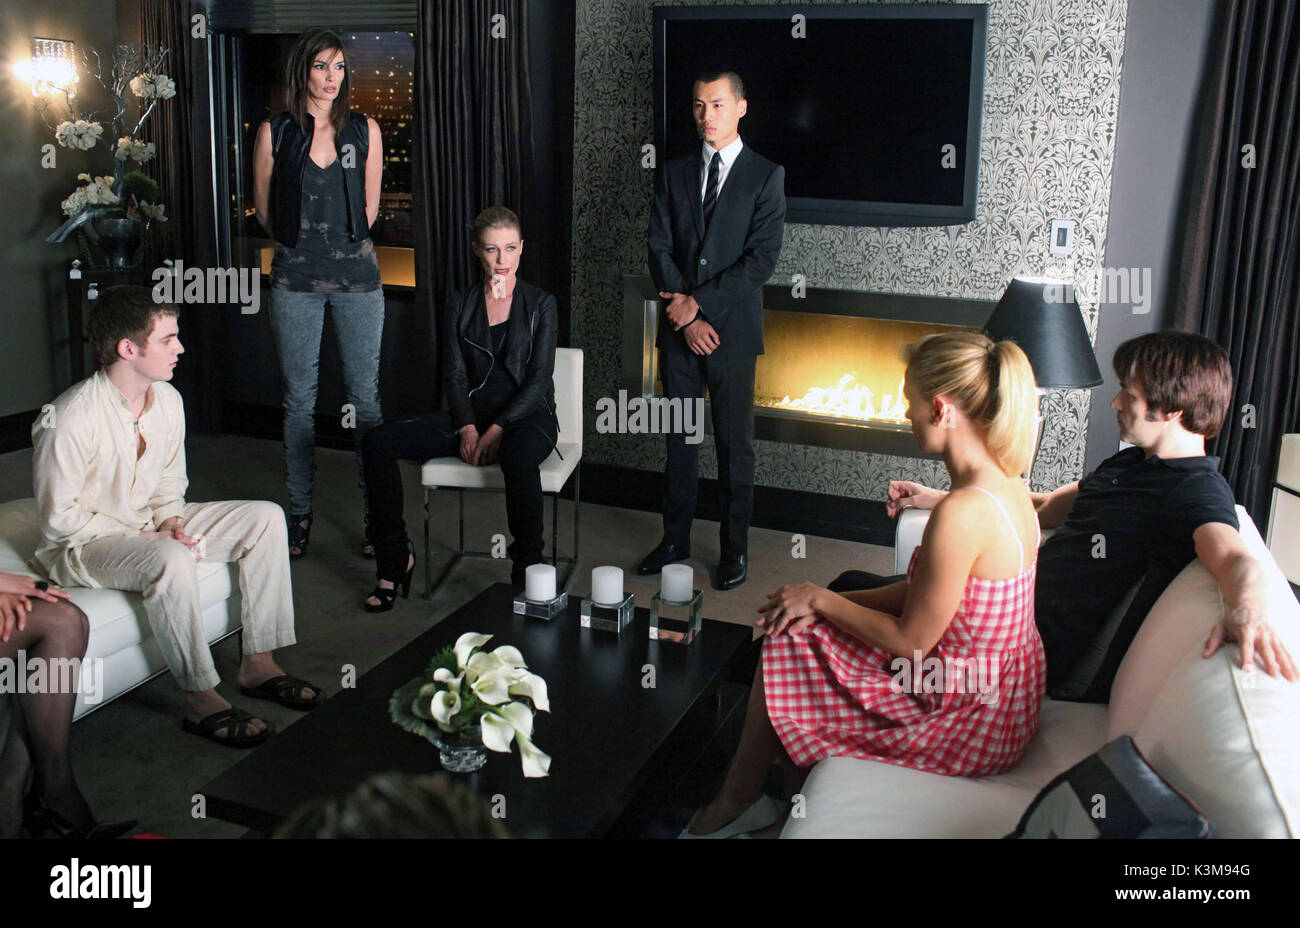 TRUE BLOOD Series,2 / Episode,8 / Timebomb ALLAN HYDE as Godric [seated], [?], JESSICA TUCK as Nana Flanagan, [?], - Stock Image